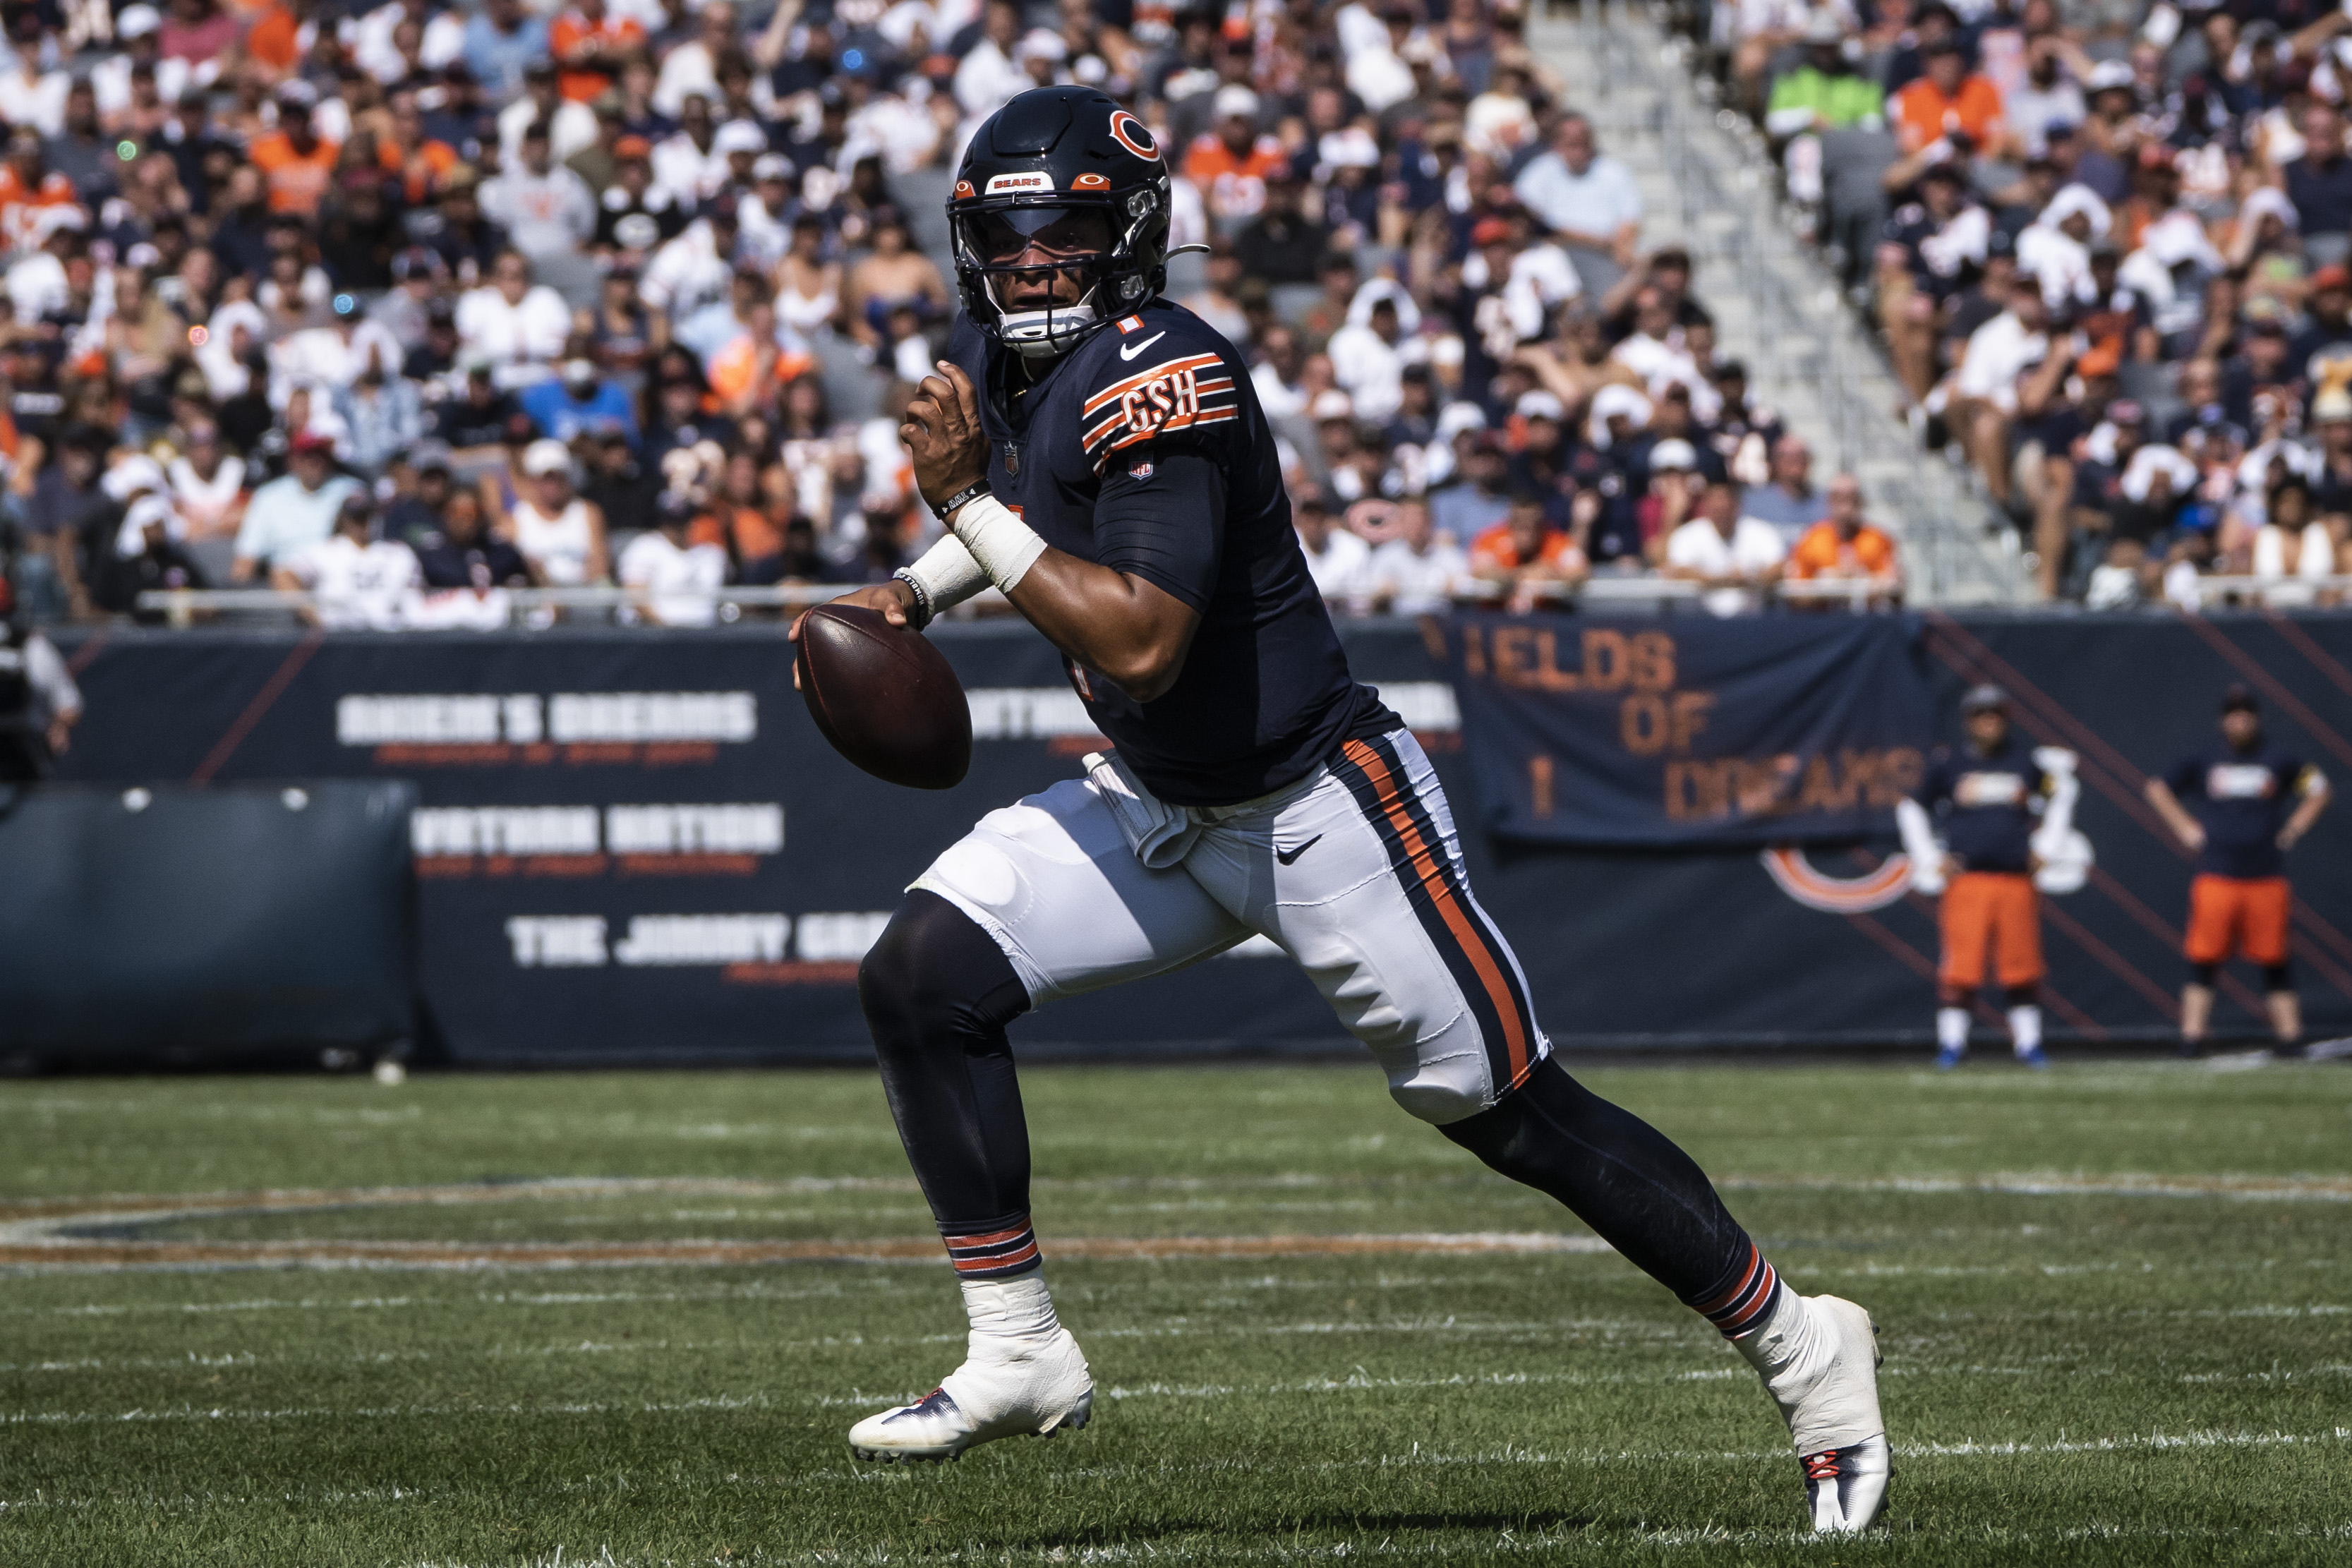 The future that fans have been dreaming about for five months finally unfolded when Fields replaced Andy Dalton on Sunday in a 20-17 win over the Bengals.